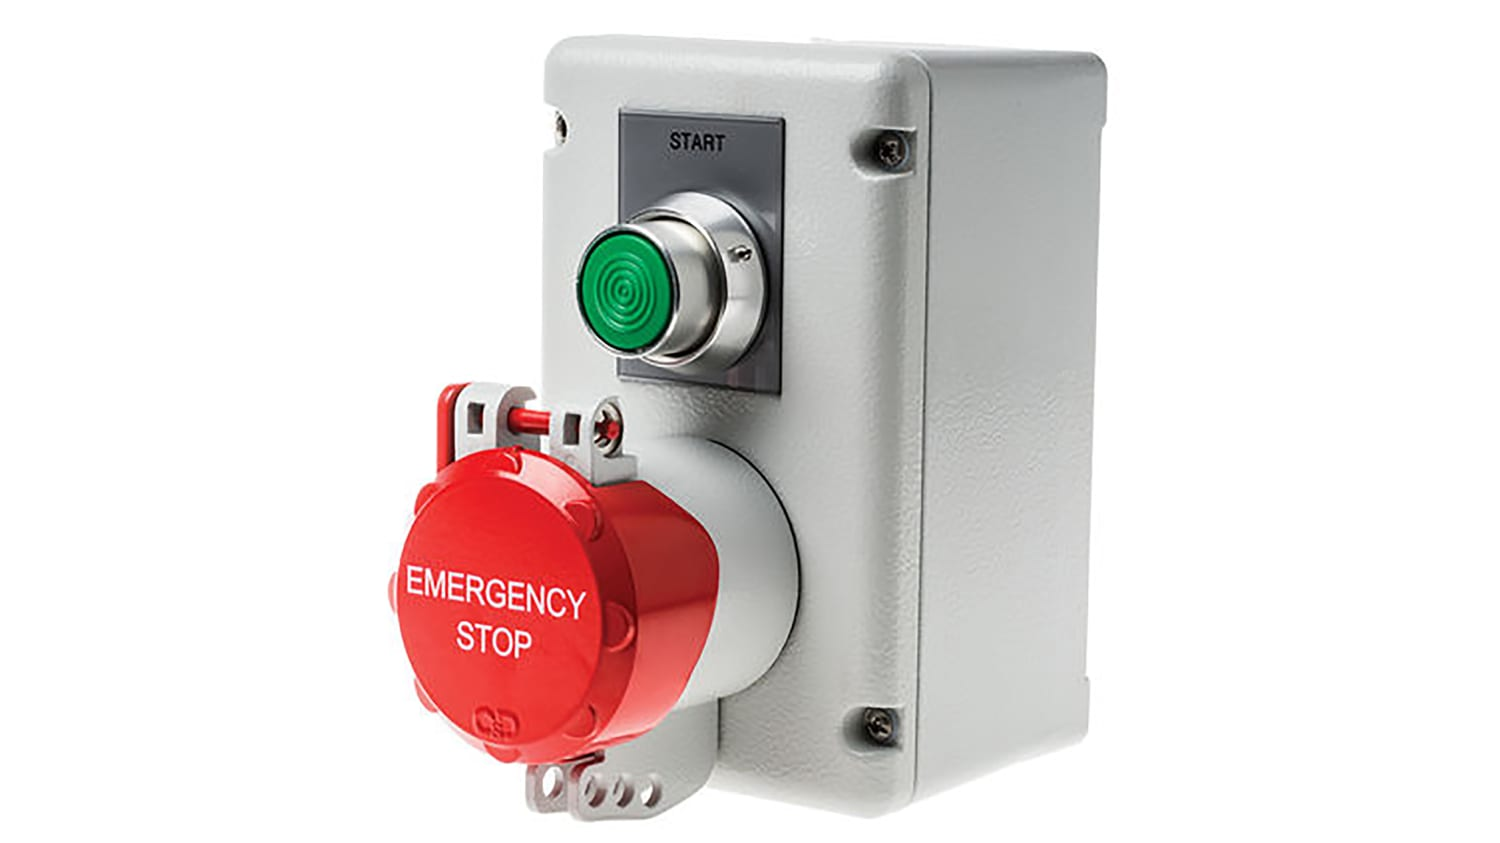 SSTH/GS/P/F1/MG/CO   Craig & Derricott Momentary (Start), Pull to Reset  (Stop) Push Button Control Station - NO/NC, Die Cast Aluminium,   RS  Components